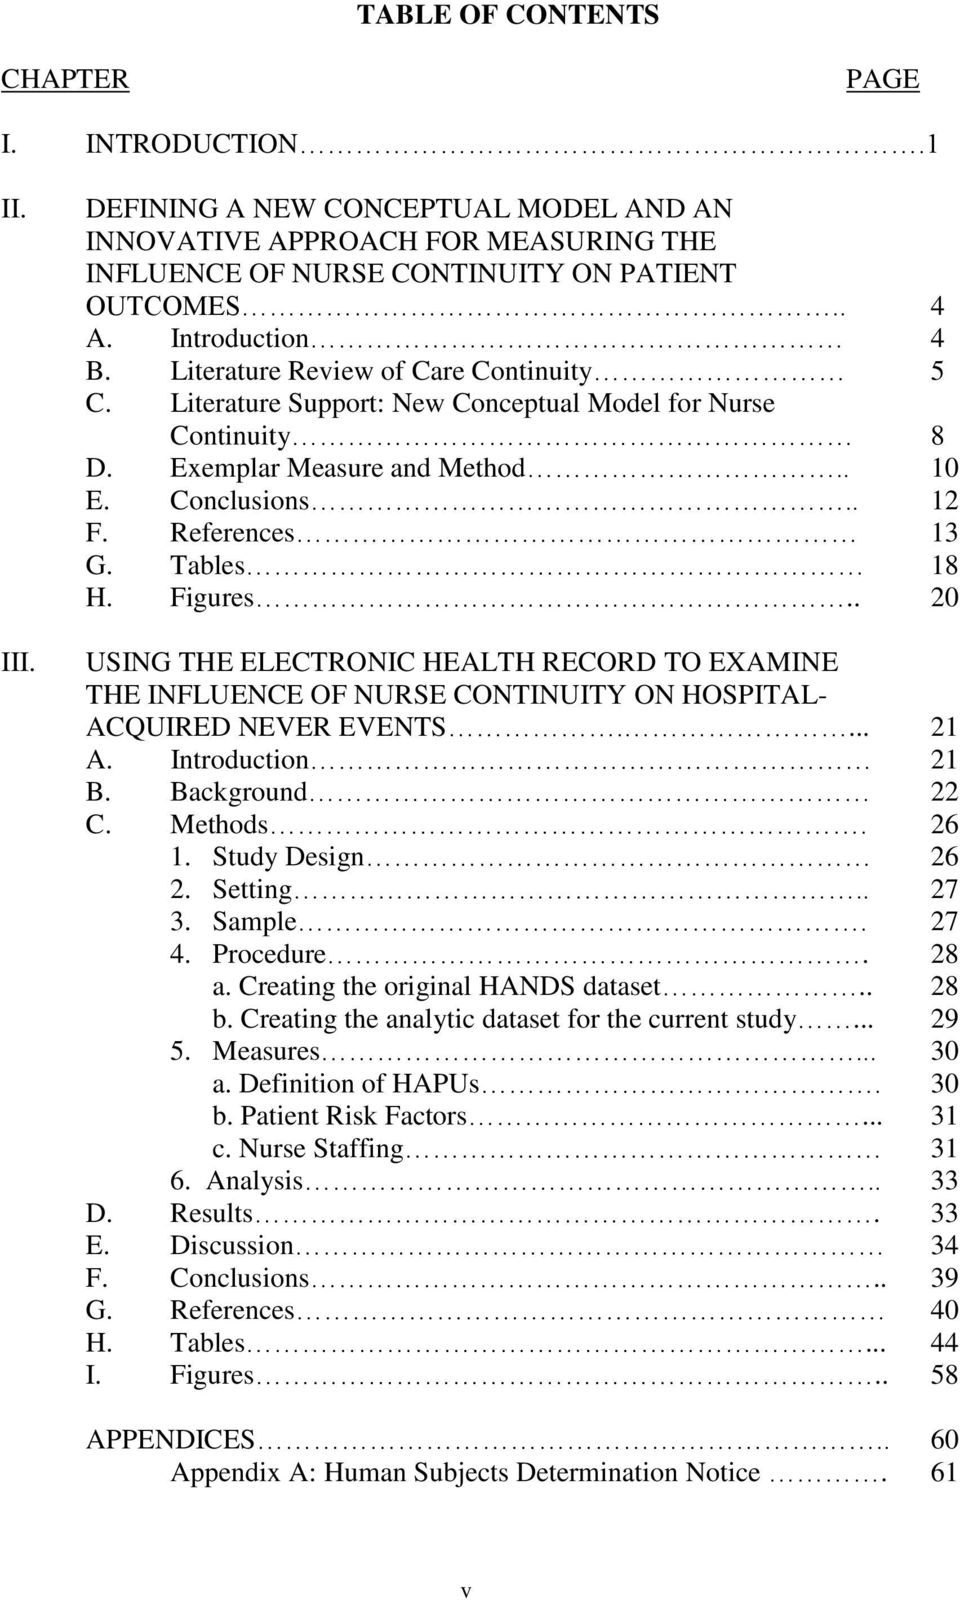 Tables 18 H. Figures.. 20 USING THE ELECTRONIC HEALTH RECORD TO EXAMINE THE INFLUENCE OF NURSE CONTINUITY ON HOSPITAL- ACQUIRED NEVER EVENTS.... 21 A. Introduction 21 B. Background 22 C. Methods.